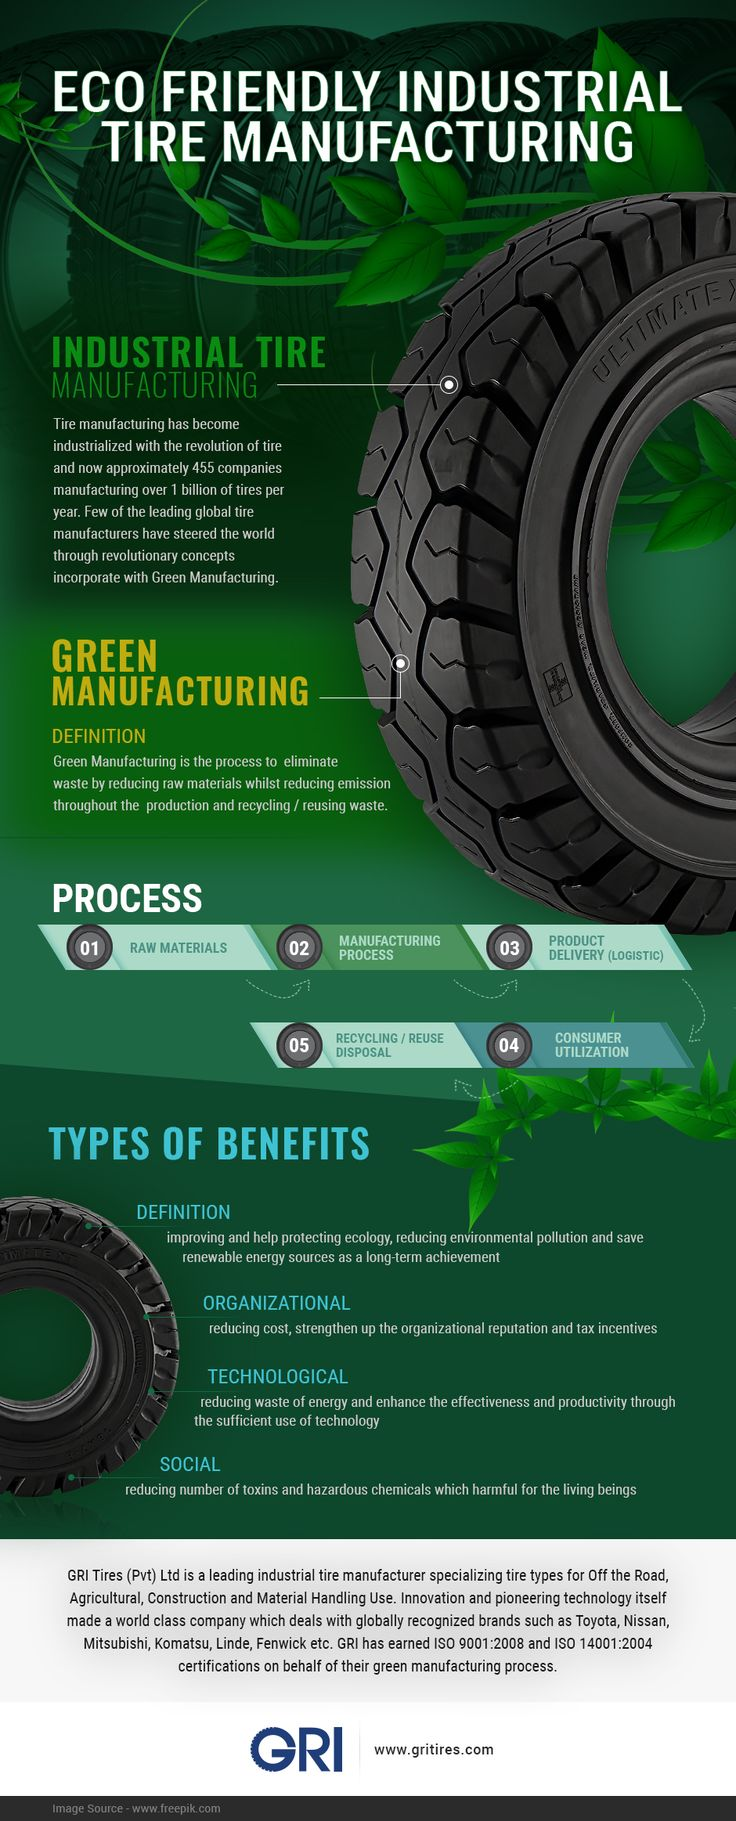 a business description of manufacturing tires The bridgestone group delivers a wide range of tires to customers around the world, such as tires for passen­ger cars, trucks and buses, aircraft, const­ruction and mining vehicles, motorcycles, etc.